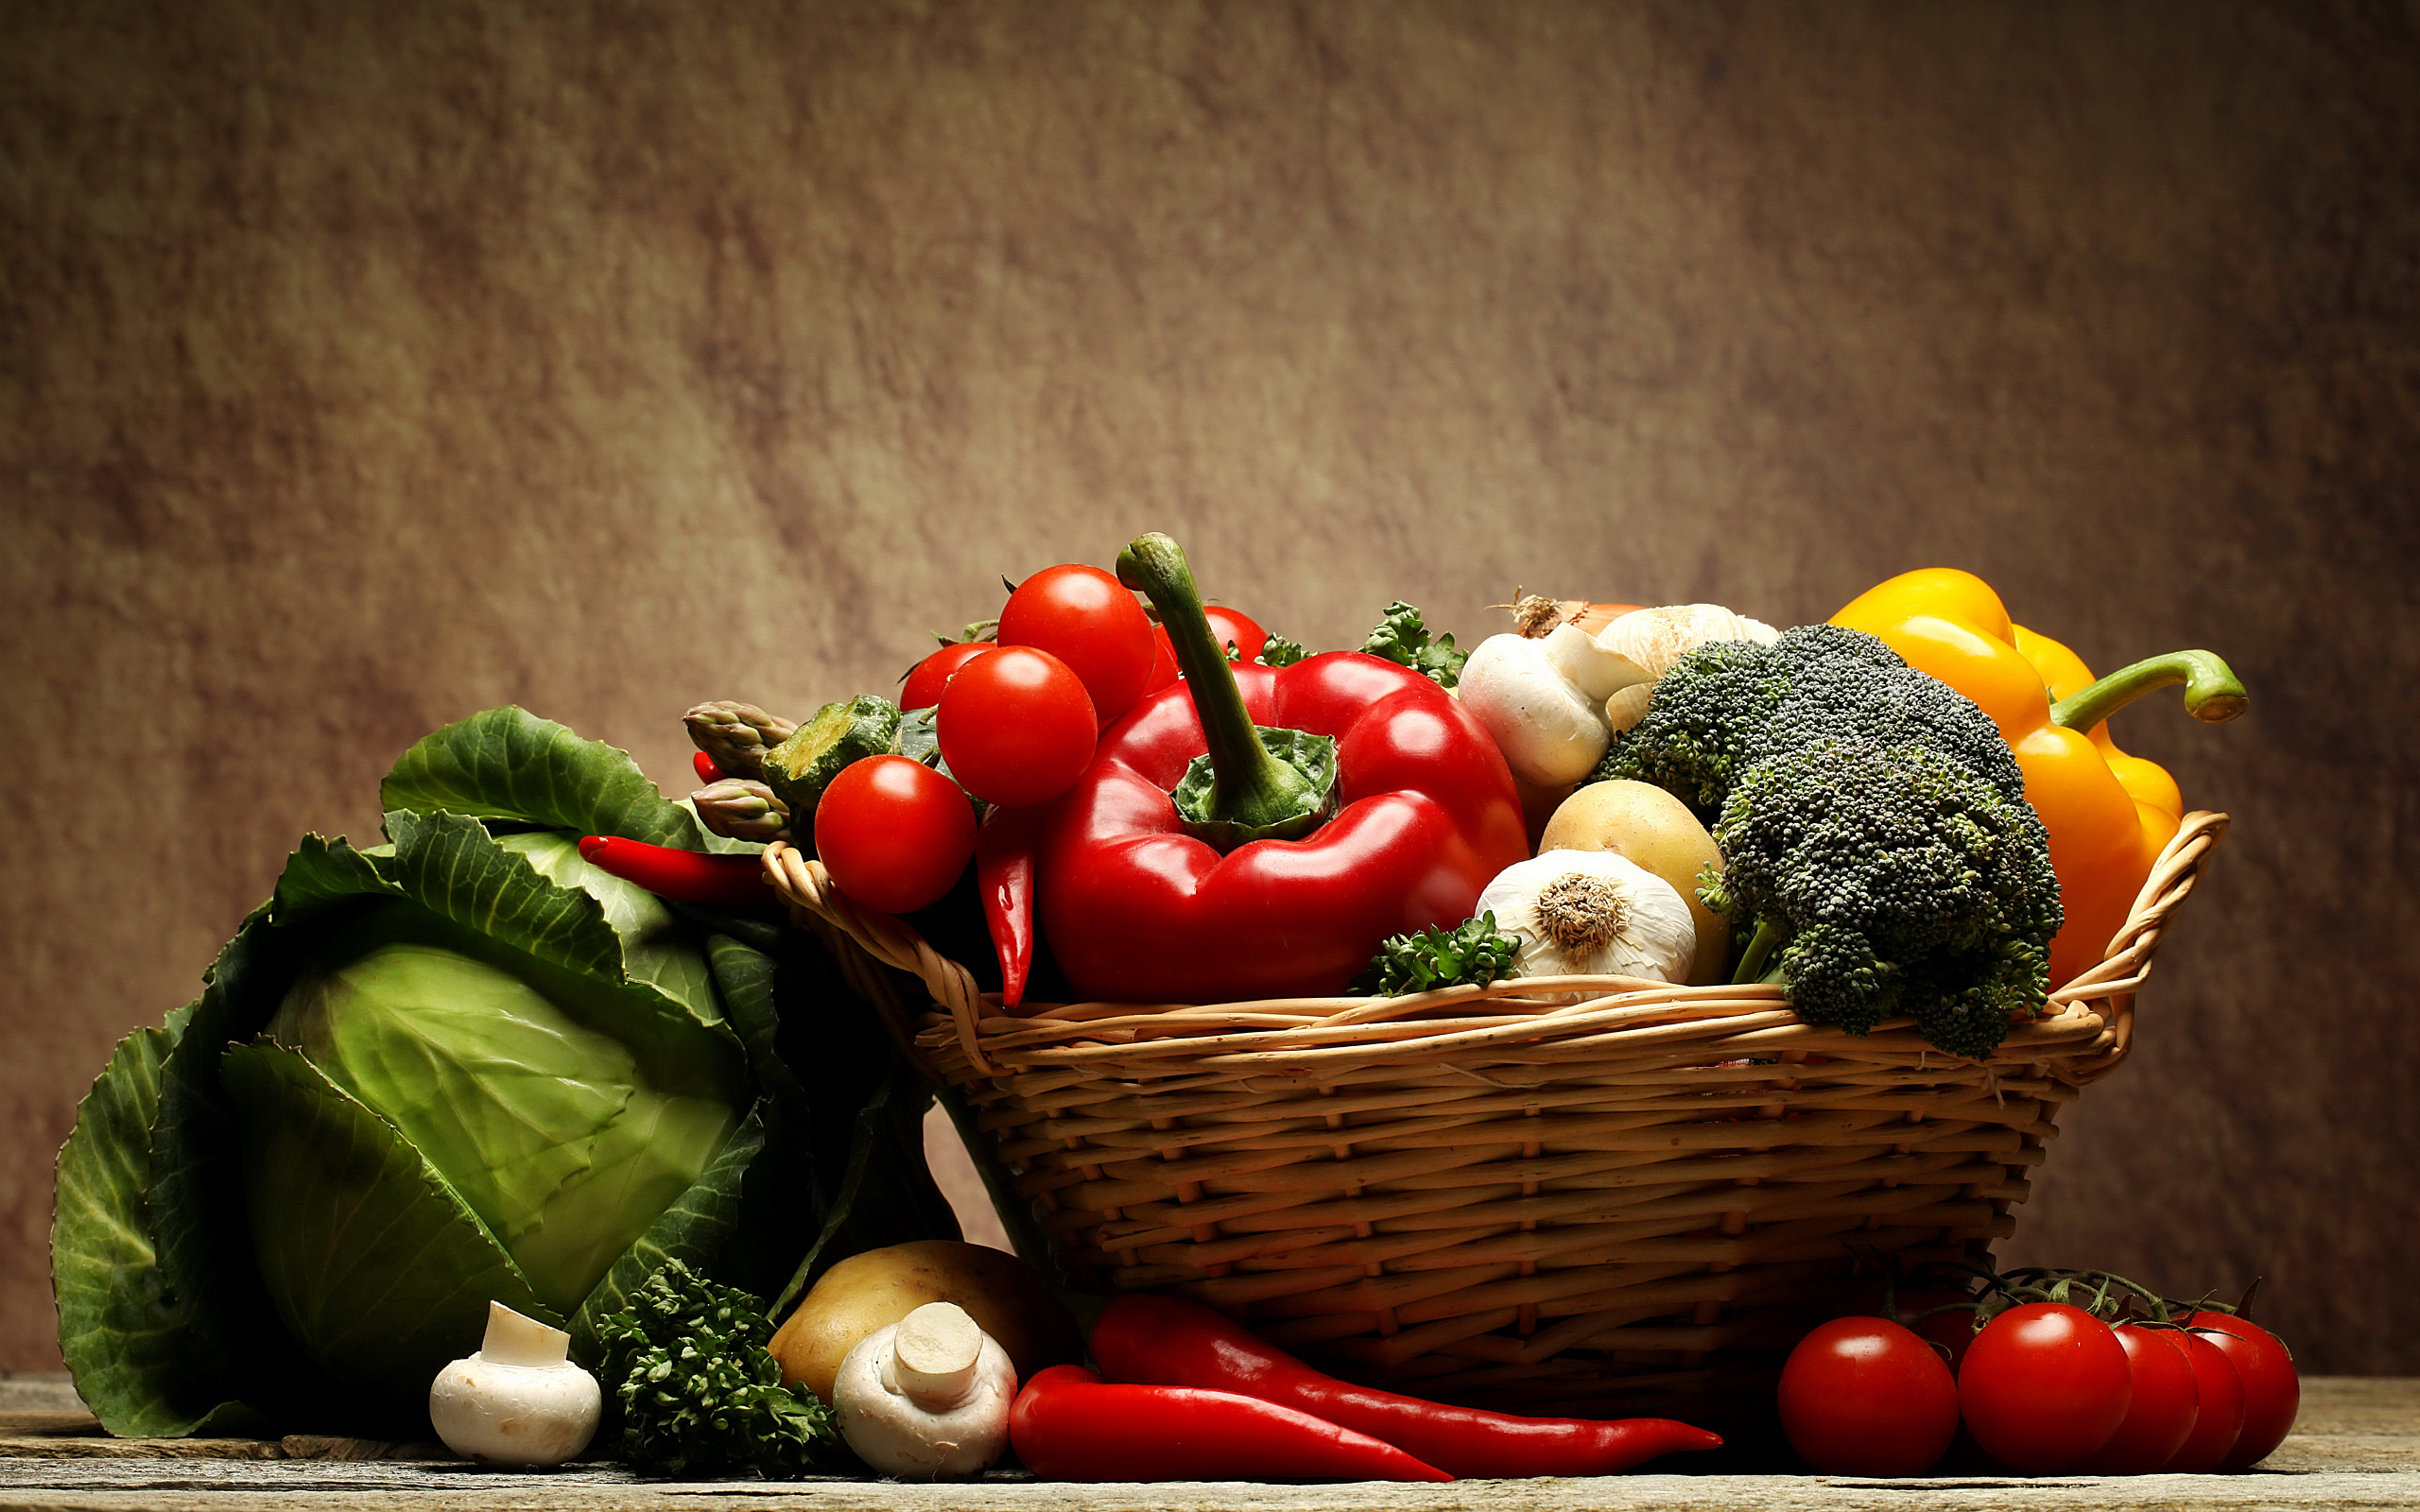 Nutrition Home - Nutrition Research Guide - Research Guides at